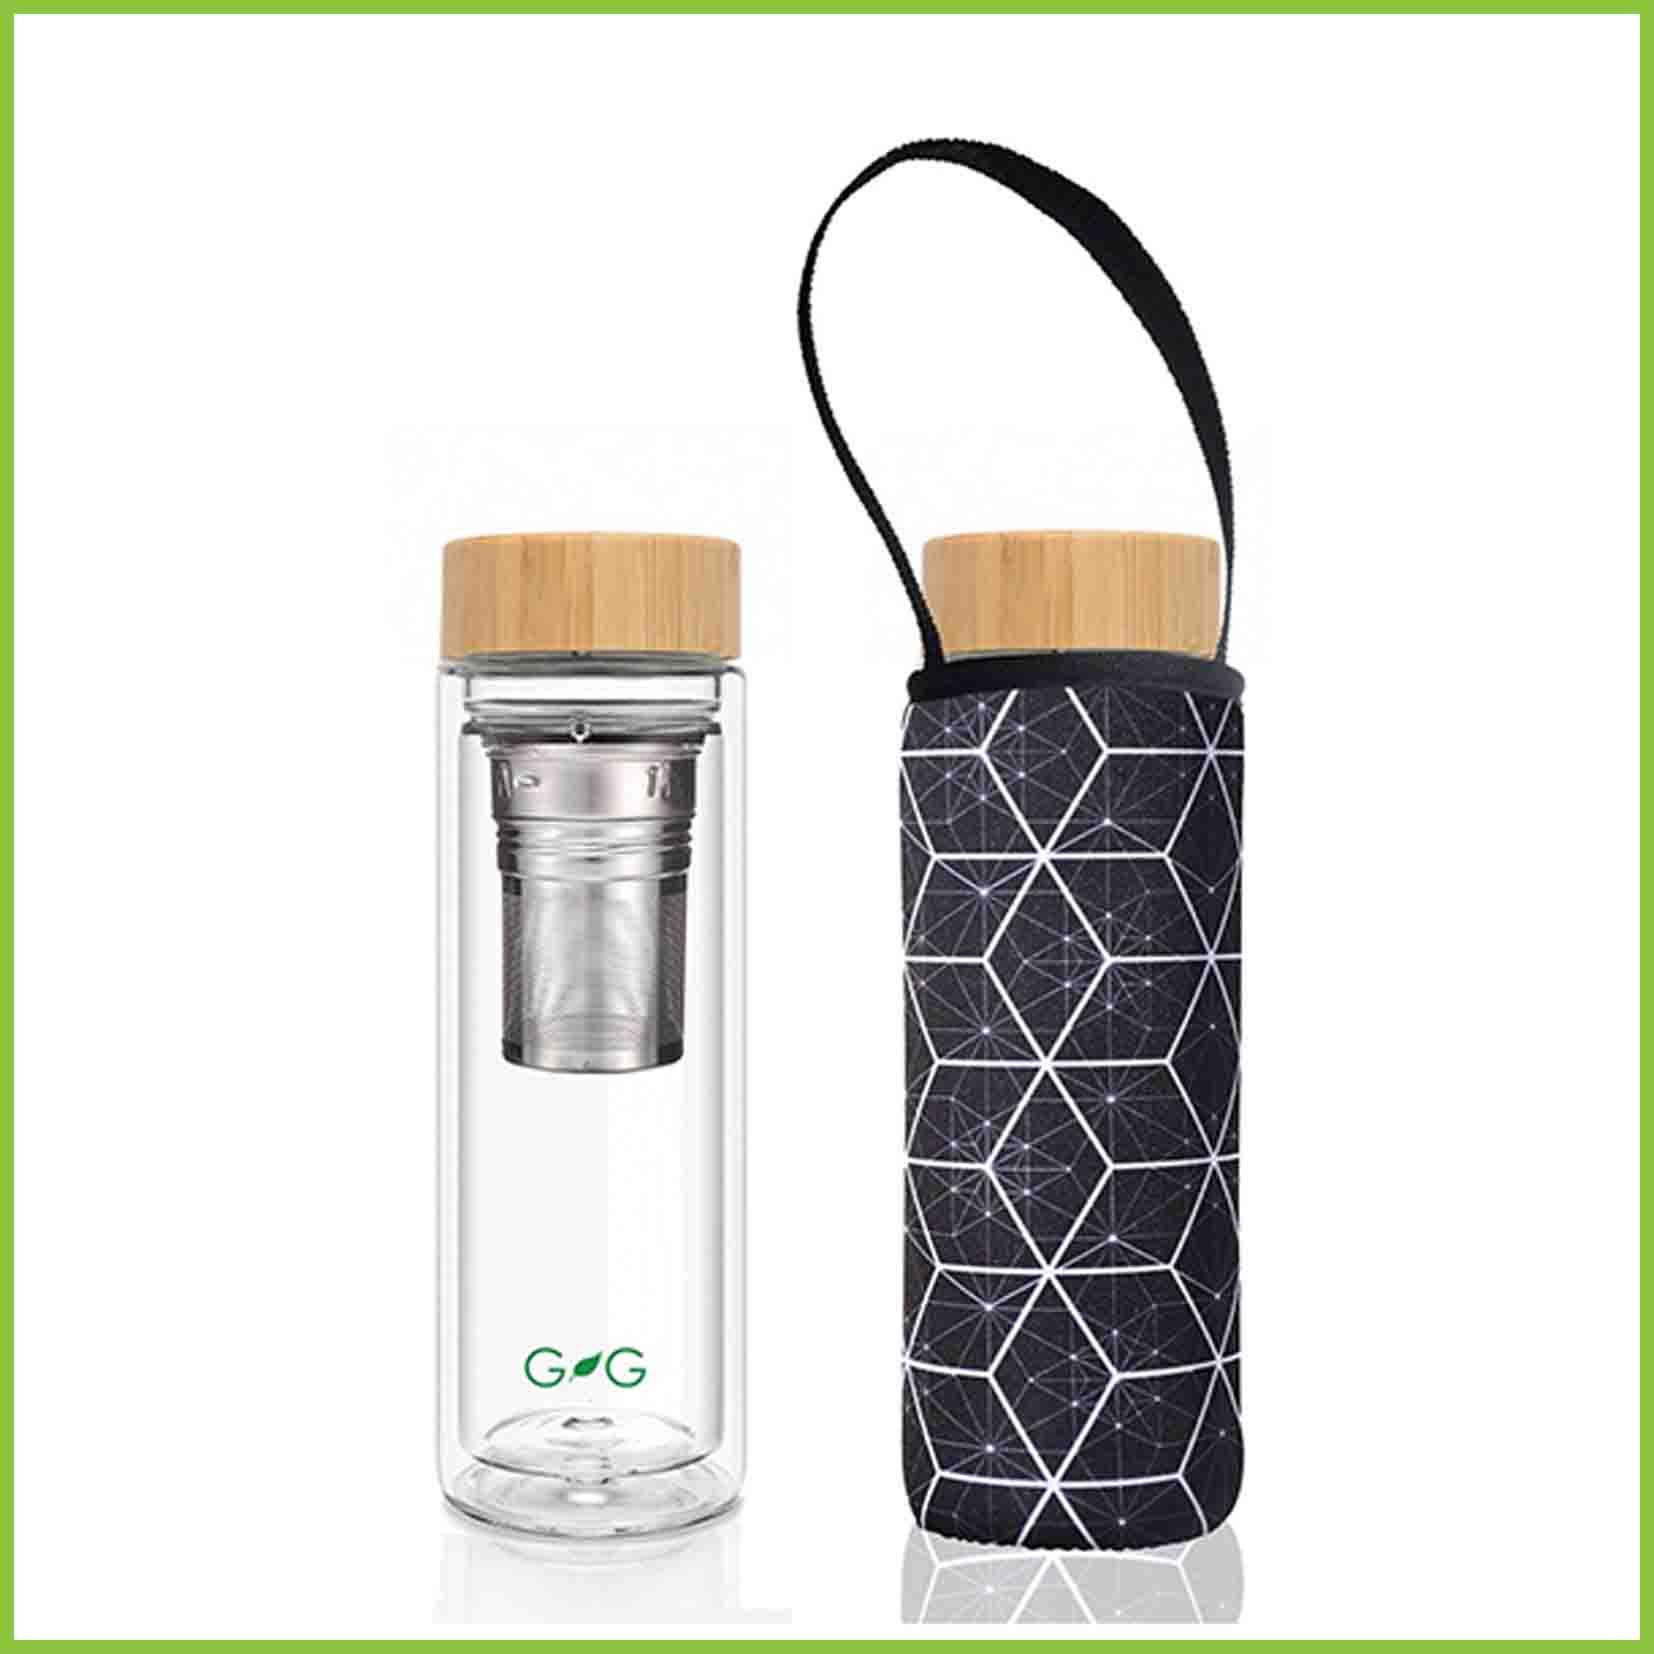 Double walled glass tea flask with a neoprene protective cover with a constellation print.